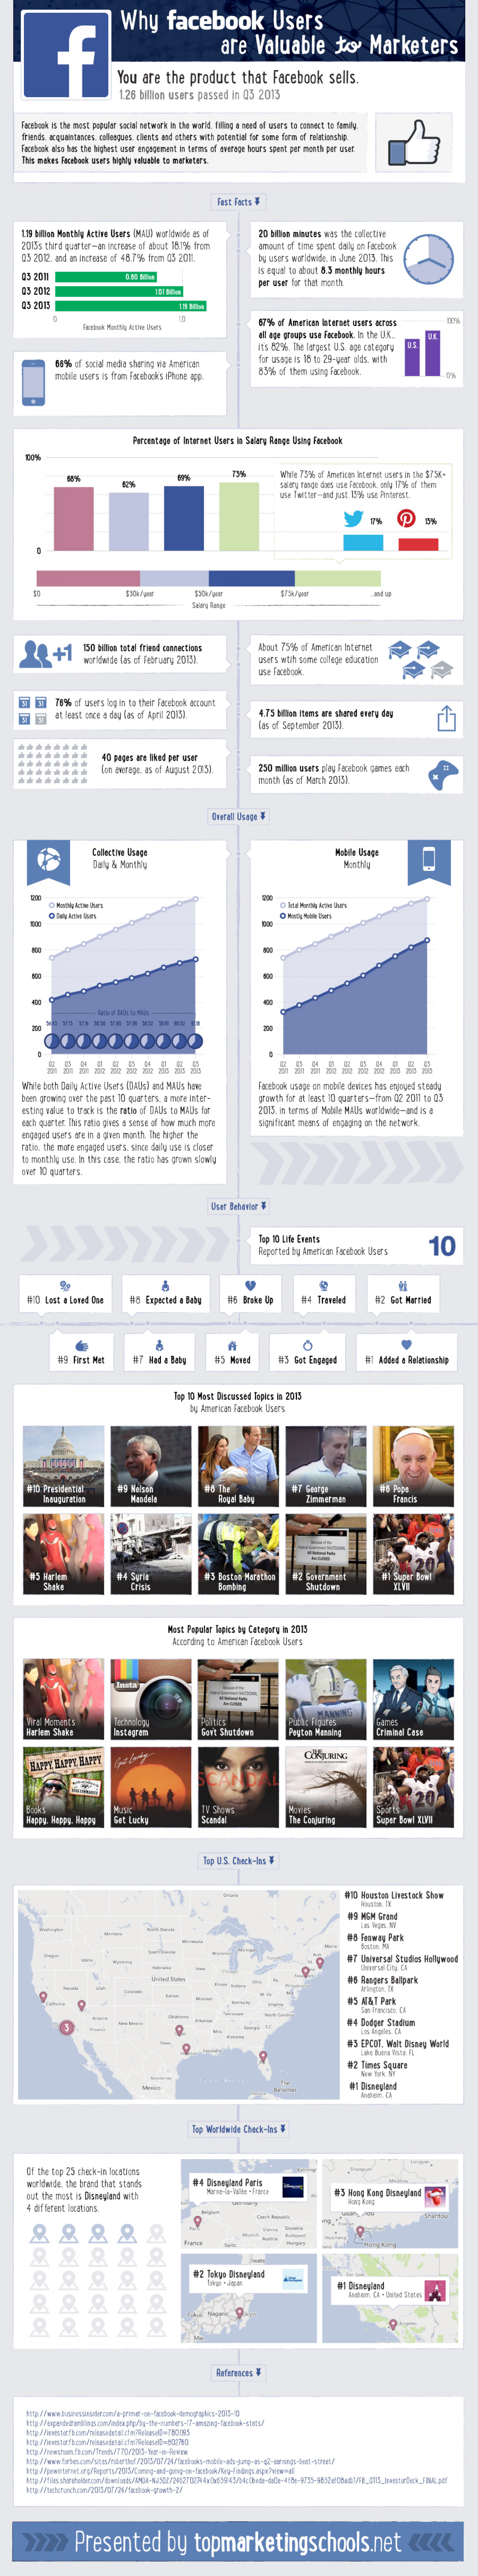 Facebook for Marketers: The Numbers Infographic